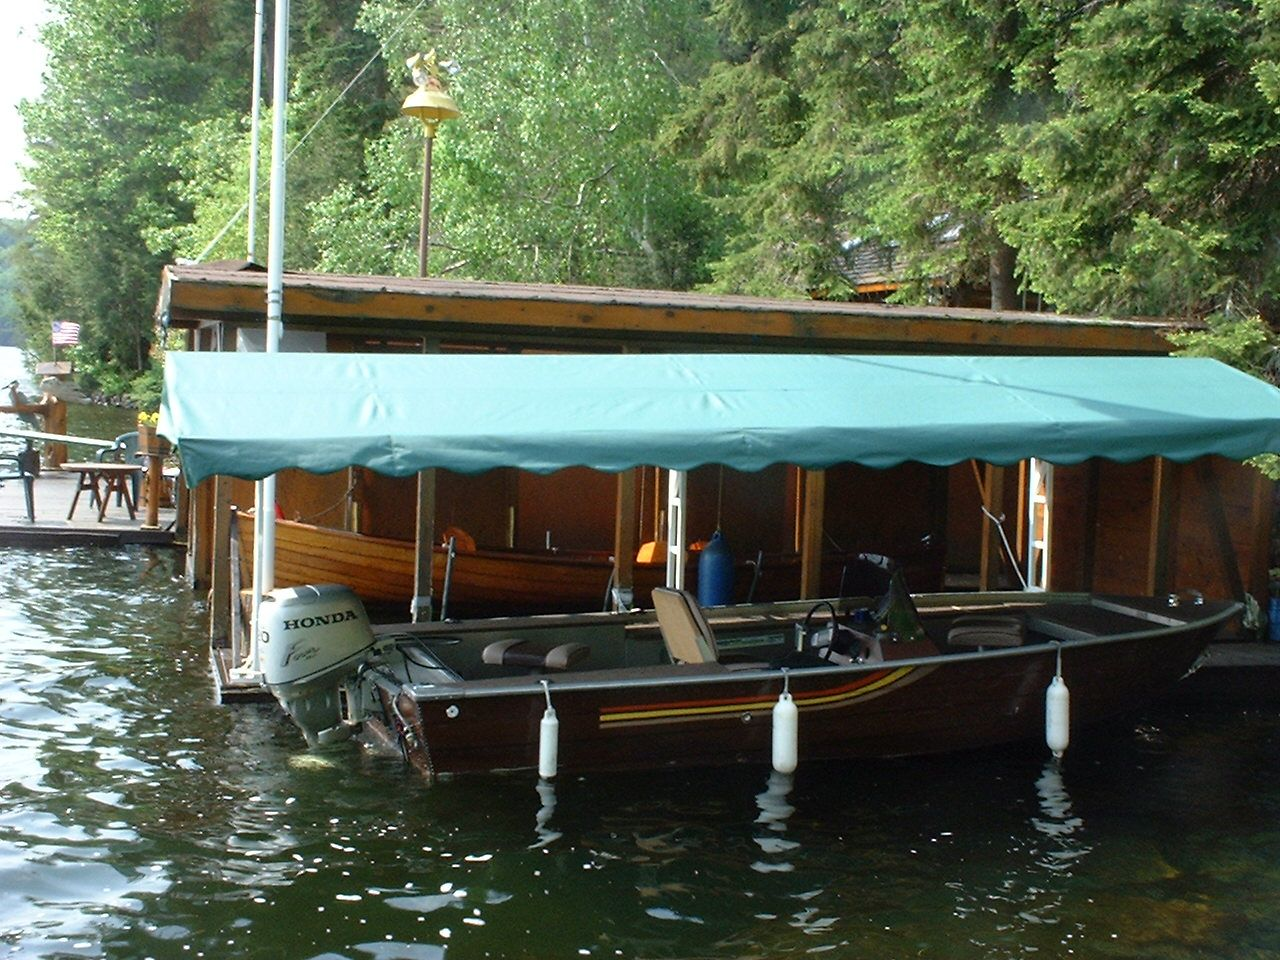 Boat and Dock Coverings image by Davlin Ontario | Design ...